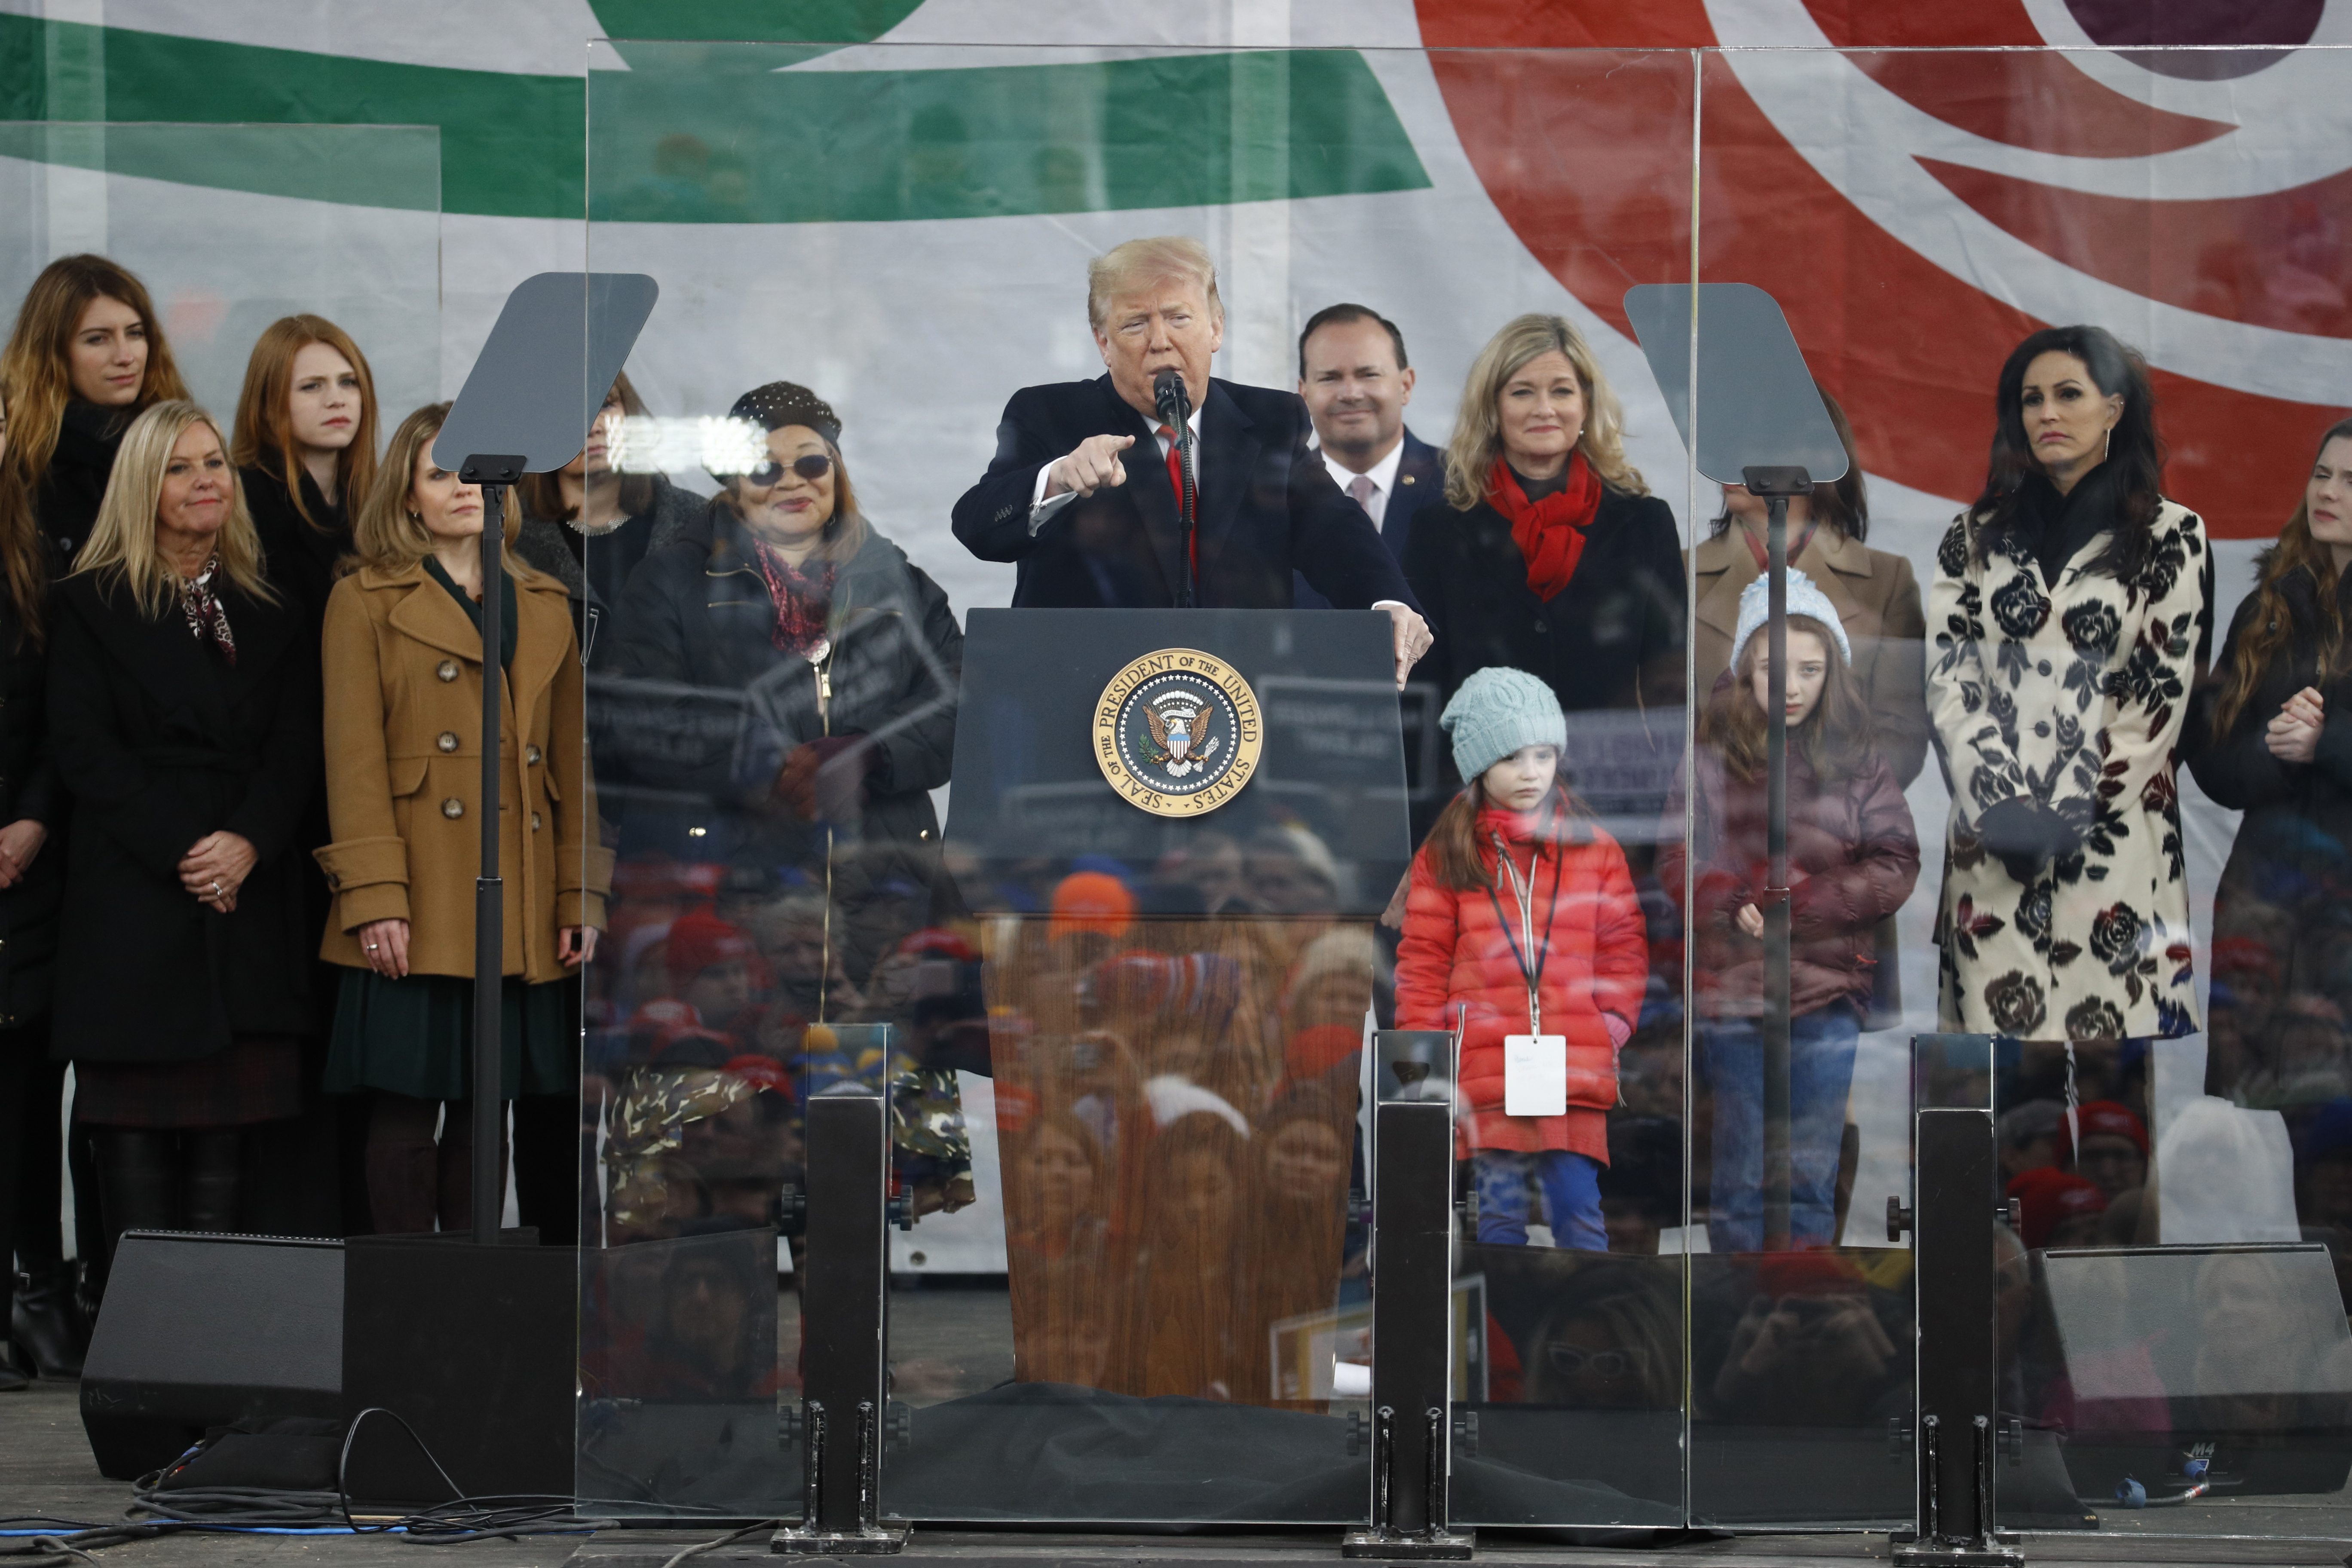 President Donald Trump speaks at a March for Life rally on Jan. 24, 2020, at the National Mall in Washington.